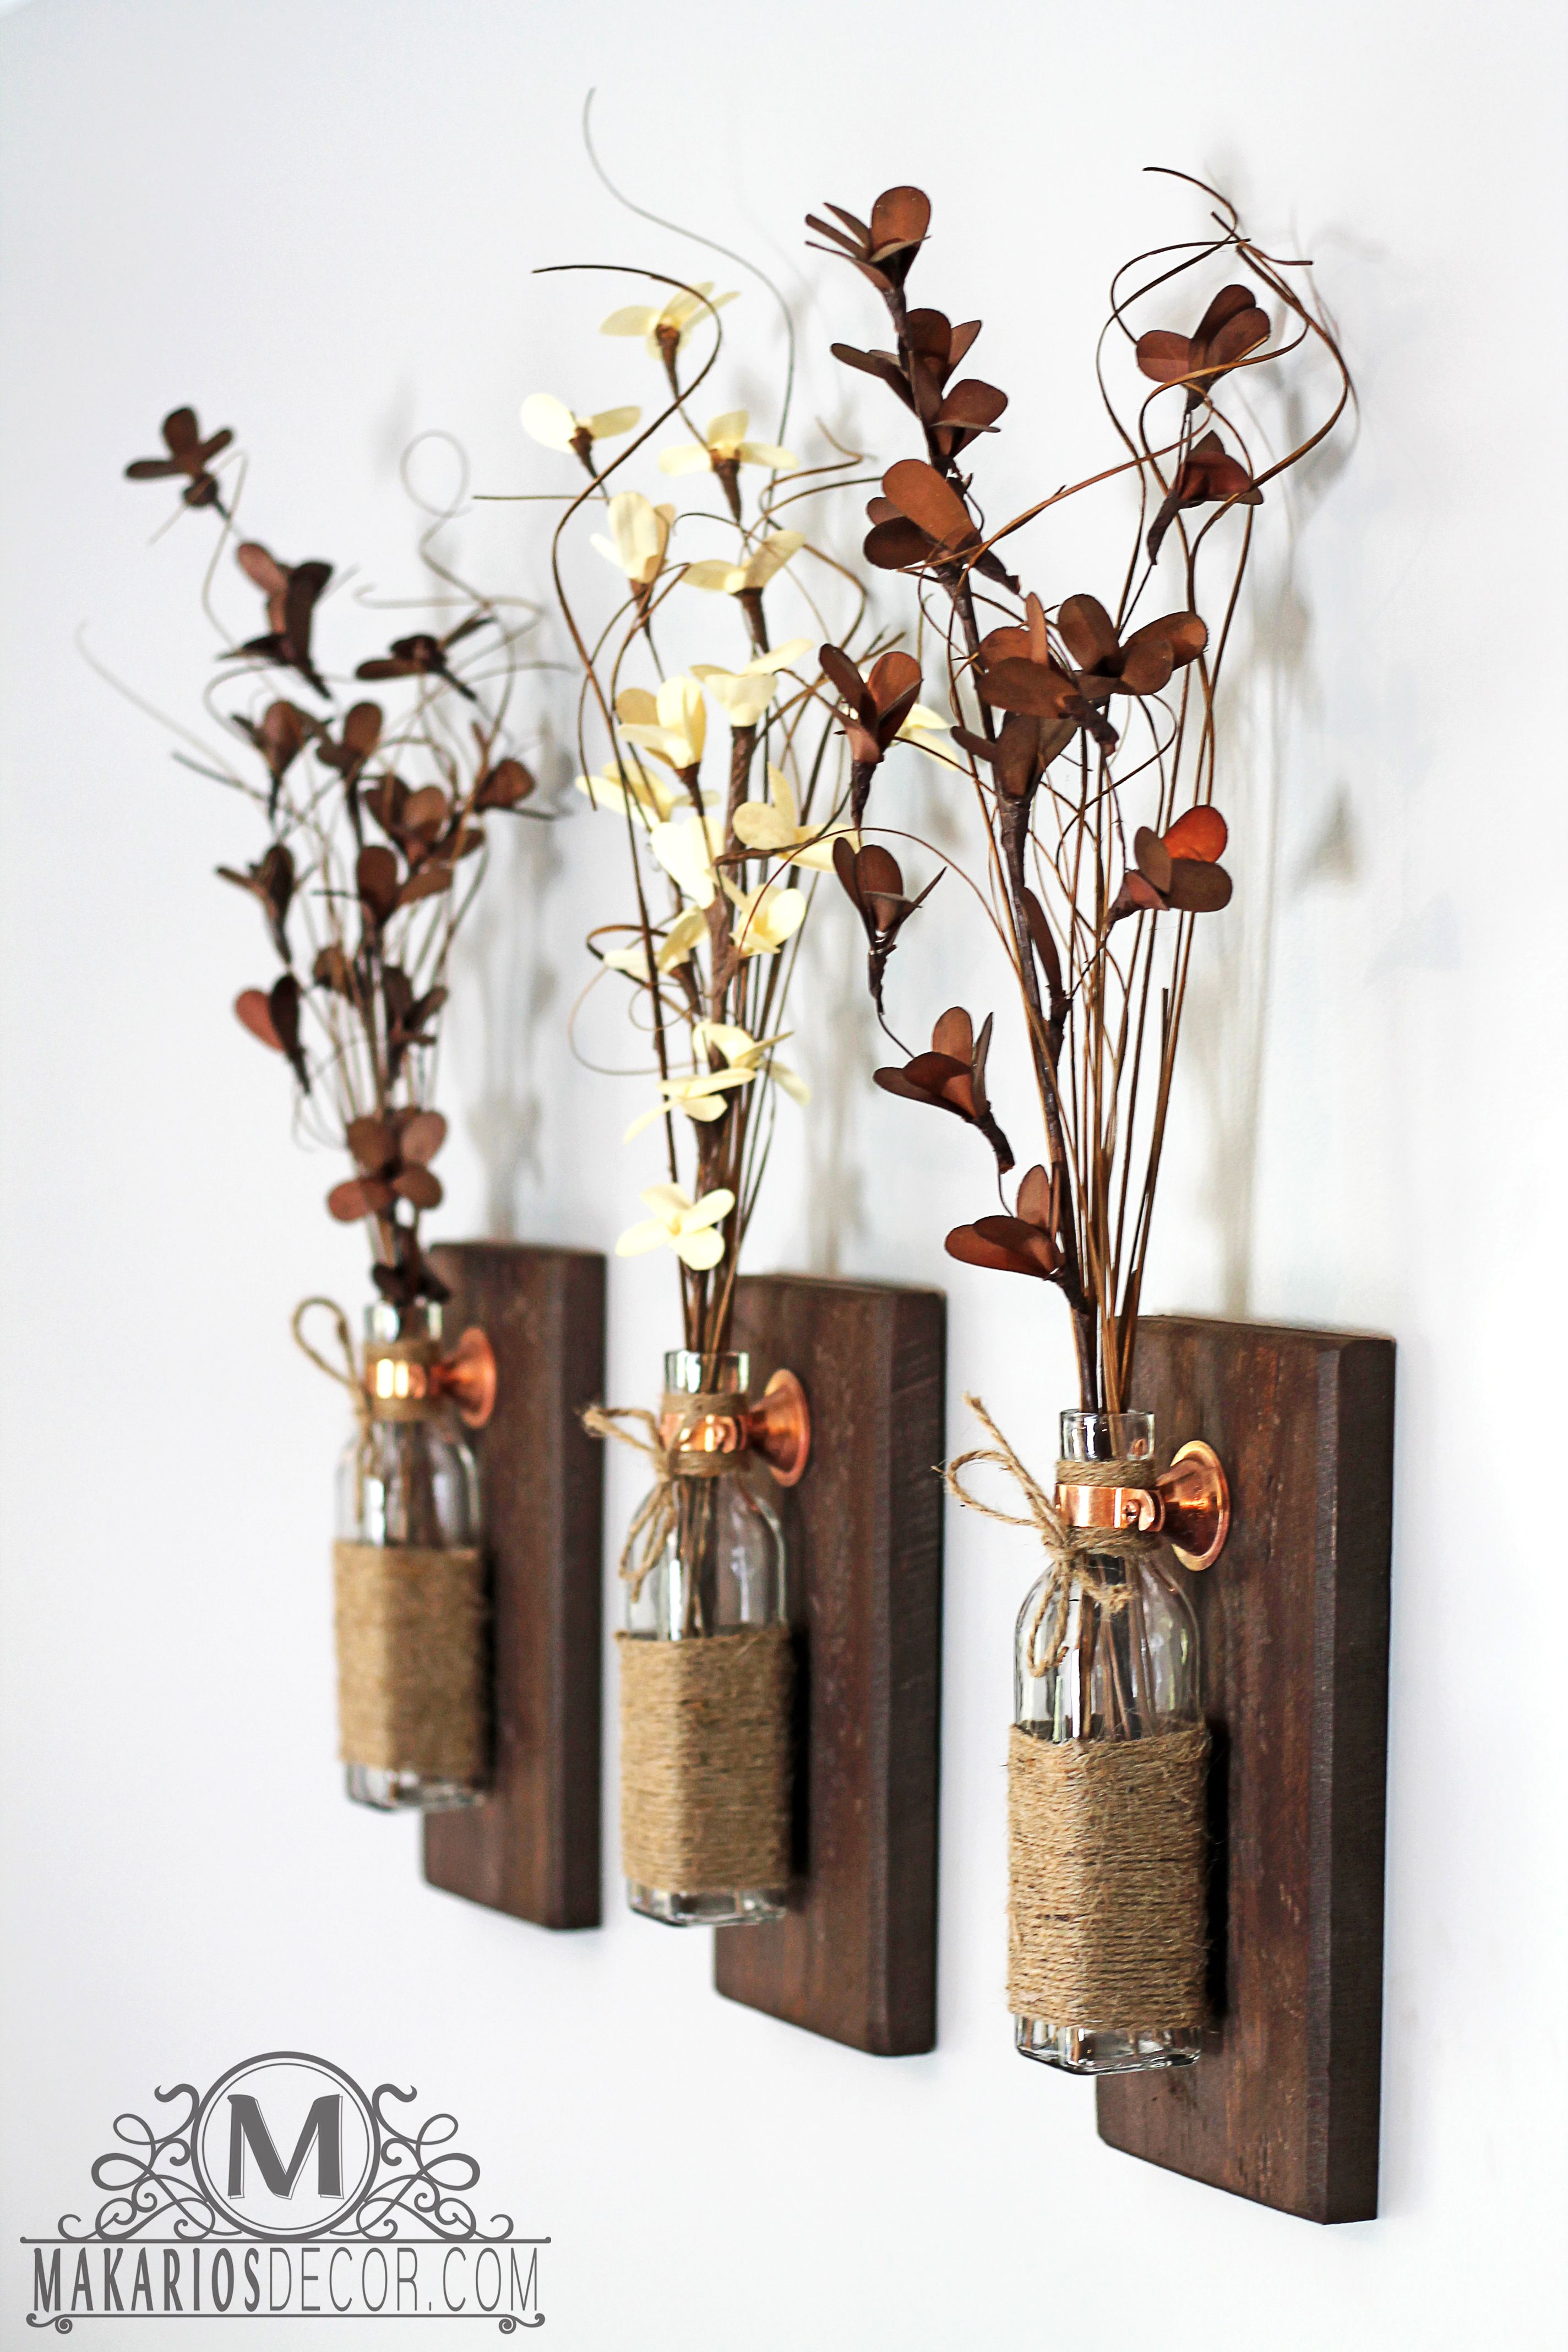 Rustic Wall Sconces | Rustic wall sconces, Rustic walls and Wall ...